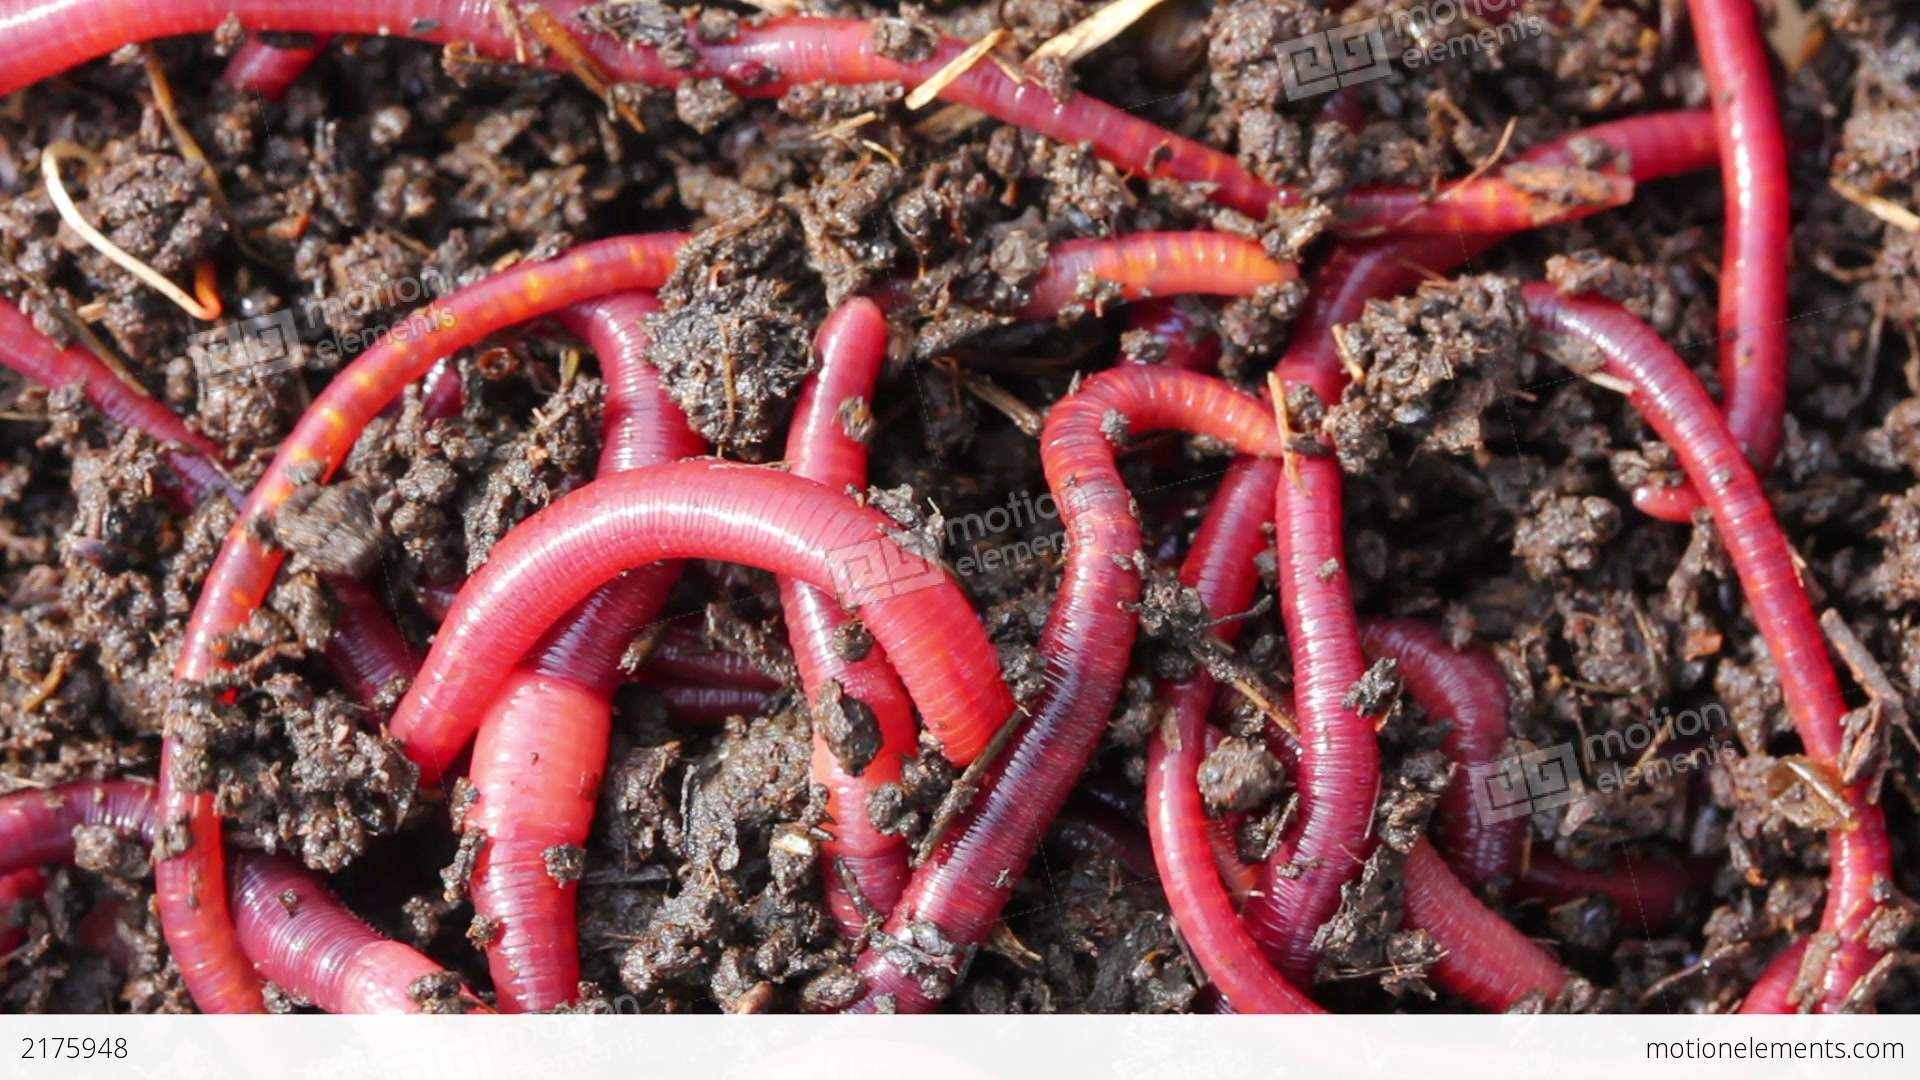 Many Red Worms In Dirt Bait For Fishing Stock Video